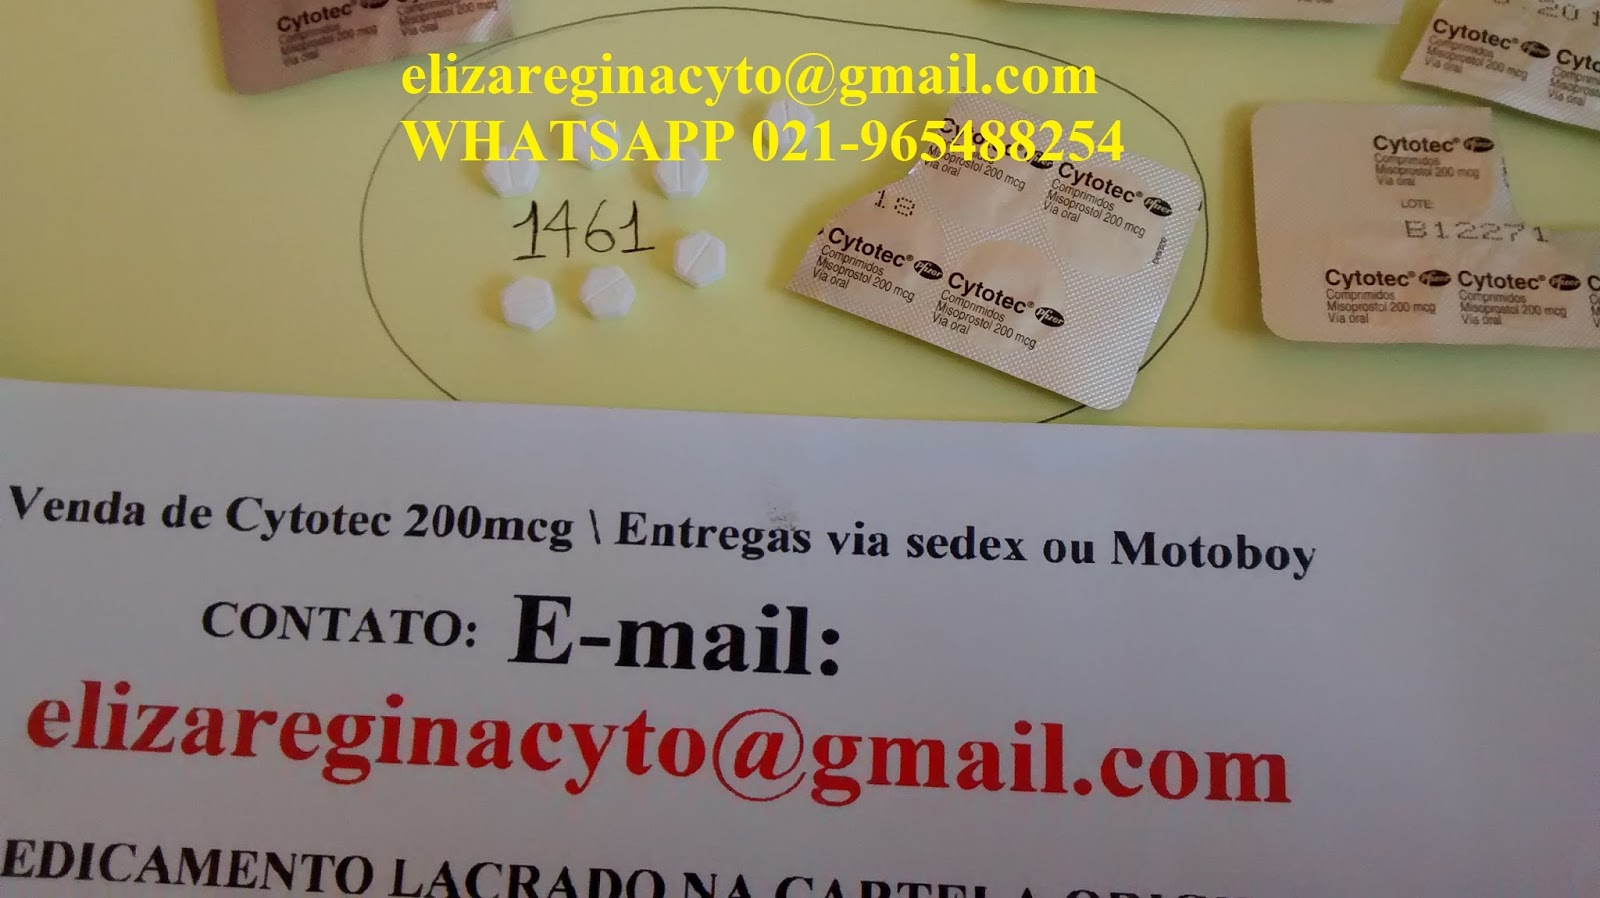 actonel canadian pharmacy online